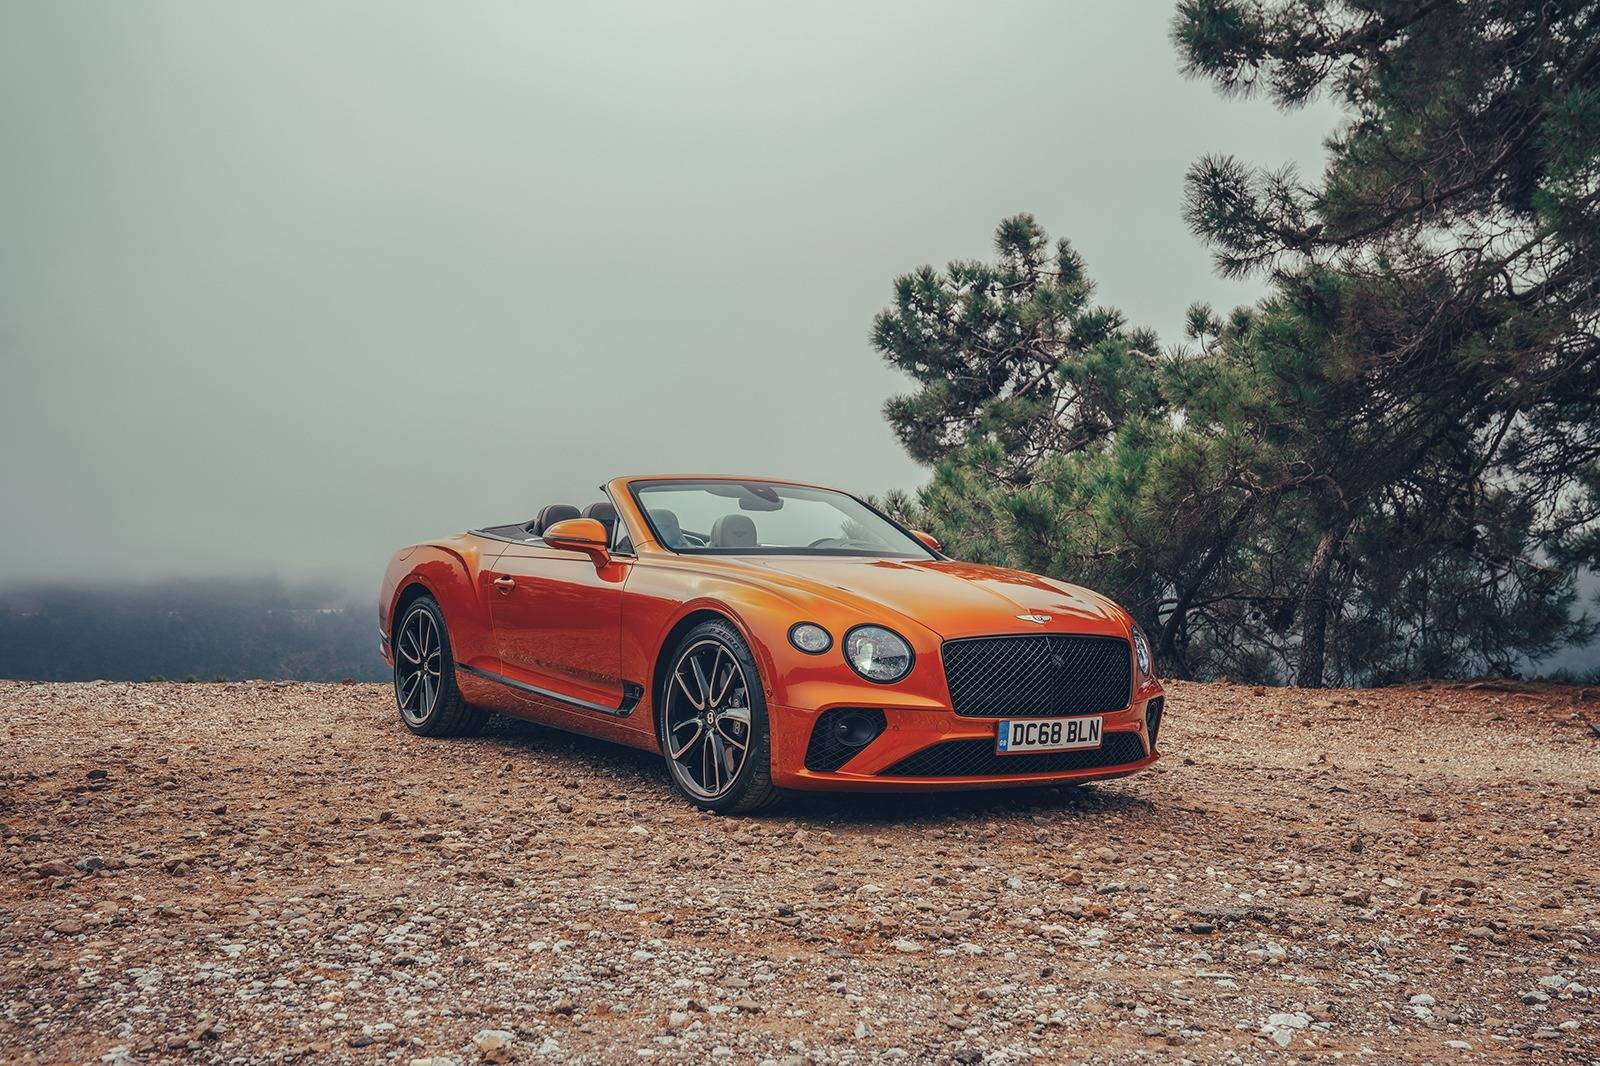 95 The Best 2020 Bentley Continental GT Price